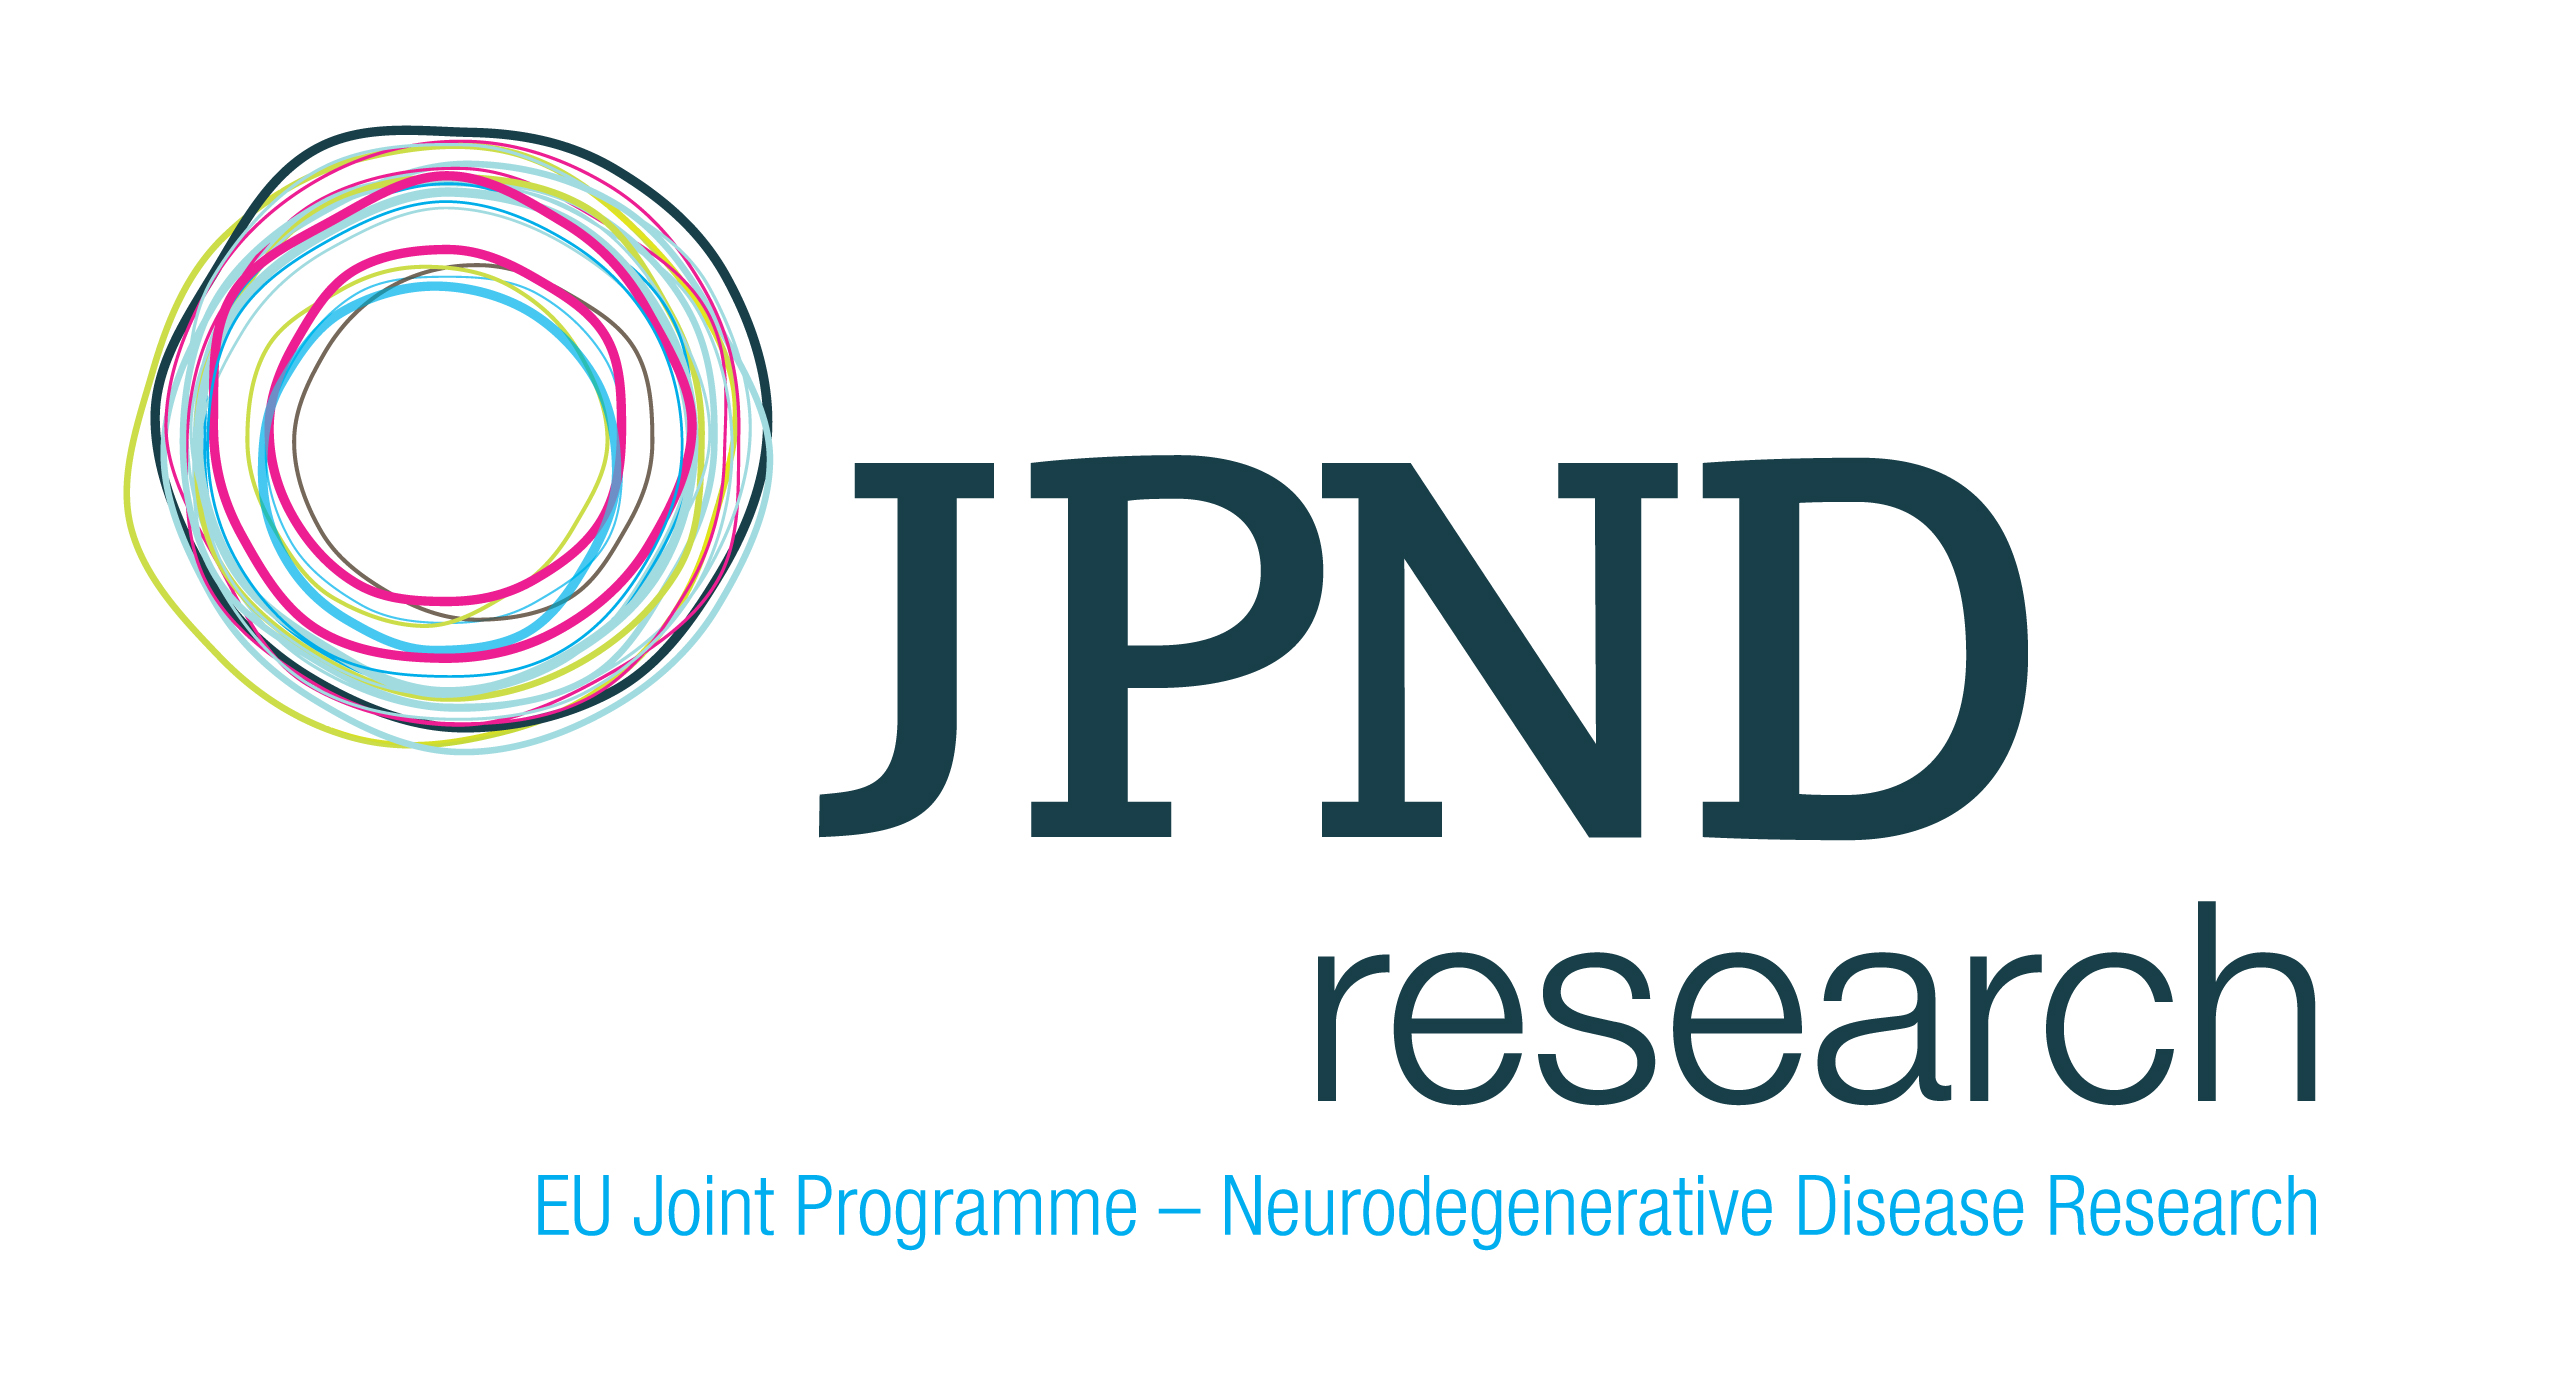 Coordination Action in support of the sustainability and globalisation of the Joint Programming Initiative on Neurodegenerative Diseases